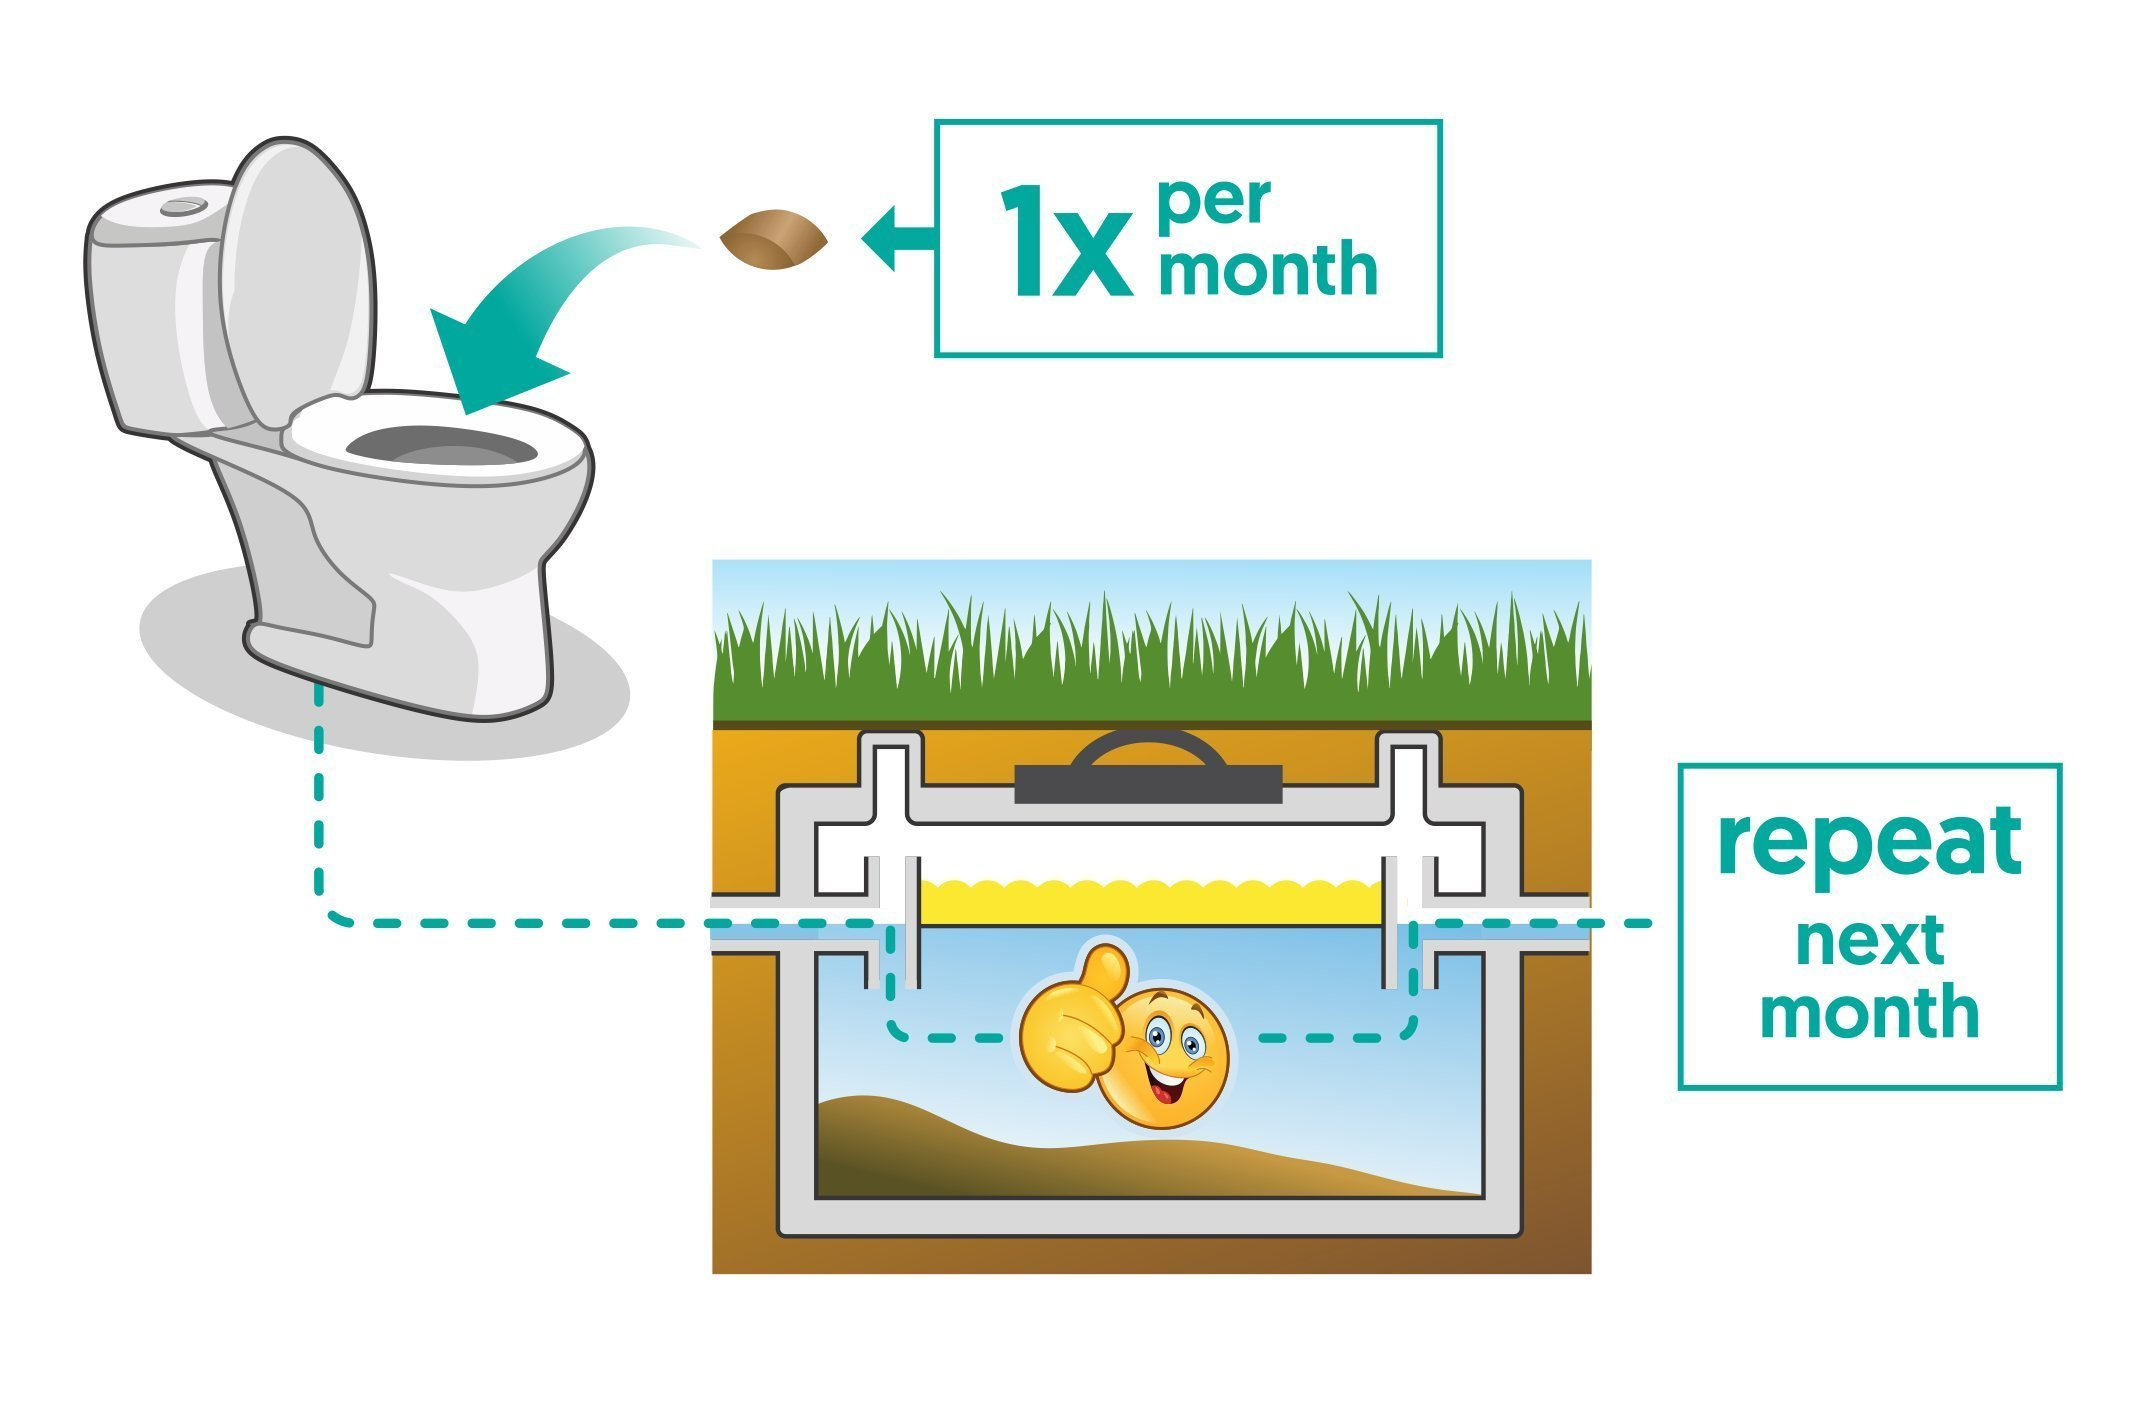 Septic Tank Treatment - 1 Year Supply of Dissolvable Easy Flush Live Bacteria Packets (12 Count) - Best Way to Prevent Expensive Sewage Backups - Made in USA by Septic Treatment by Cabin Obsession (Image #4)